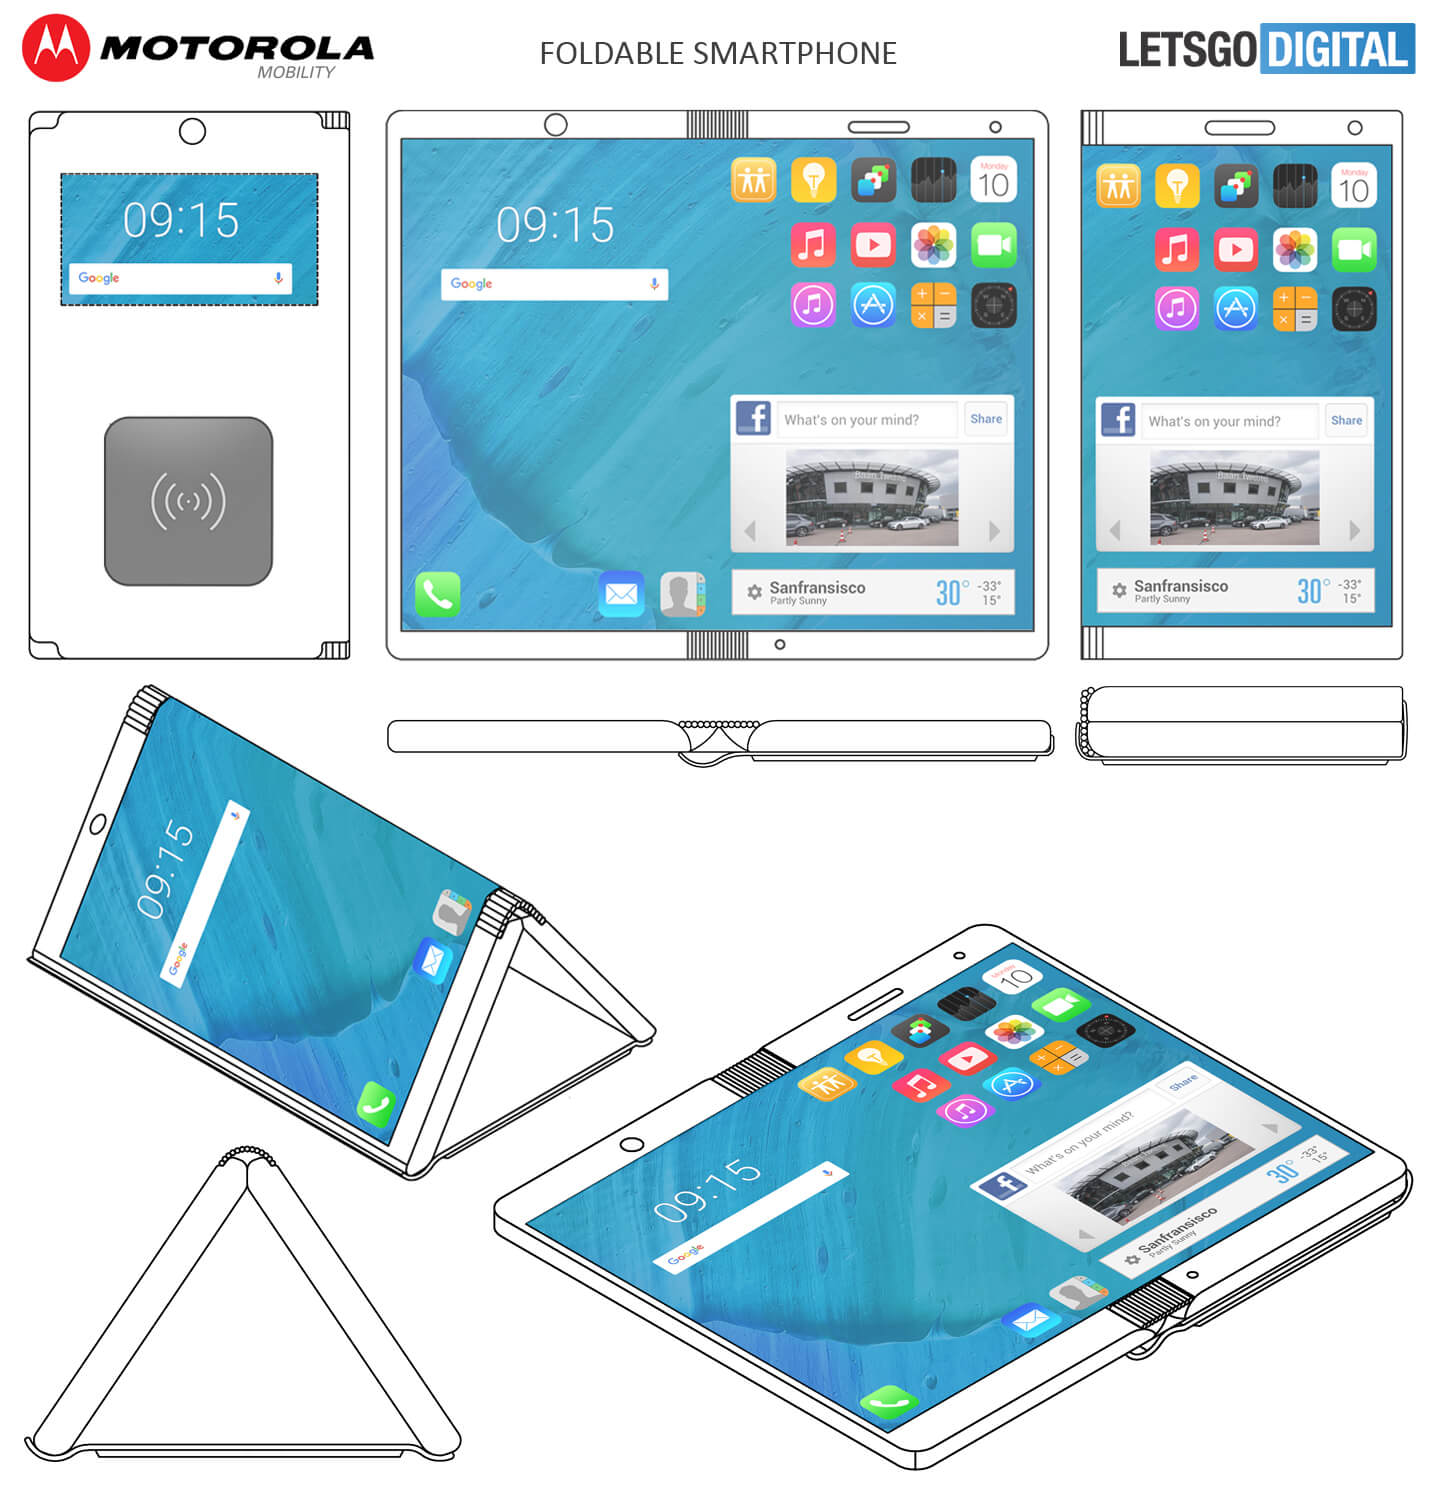 Motorola foldable smartphone release on track with patent approval